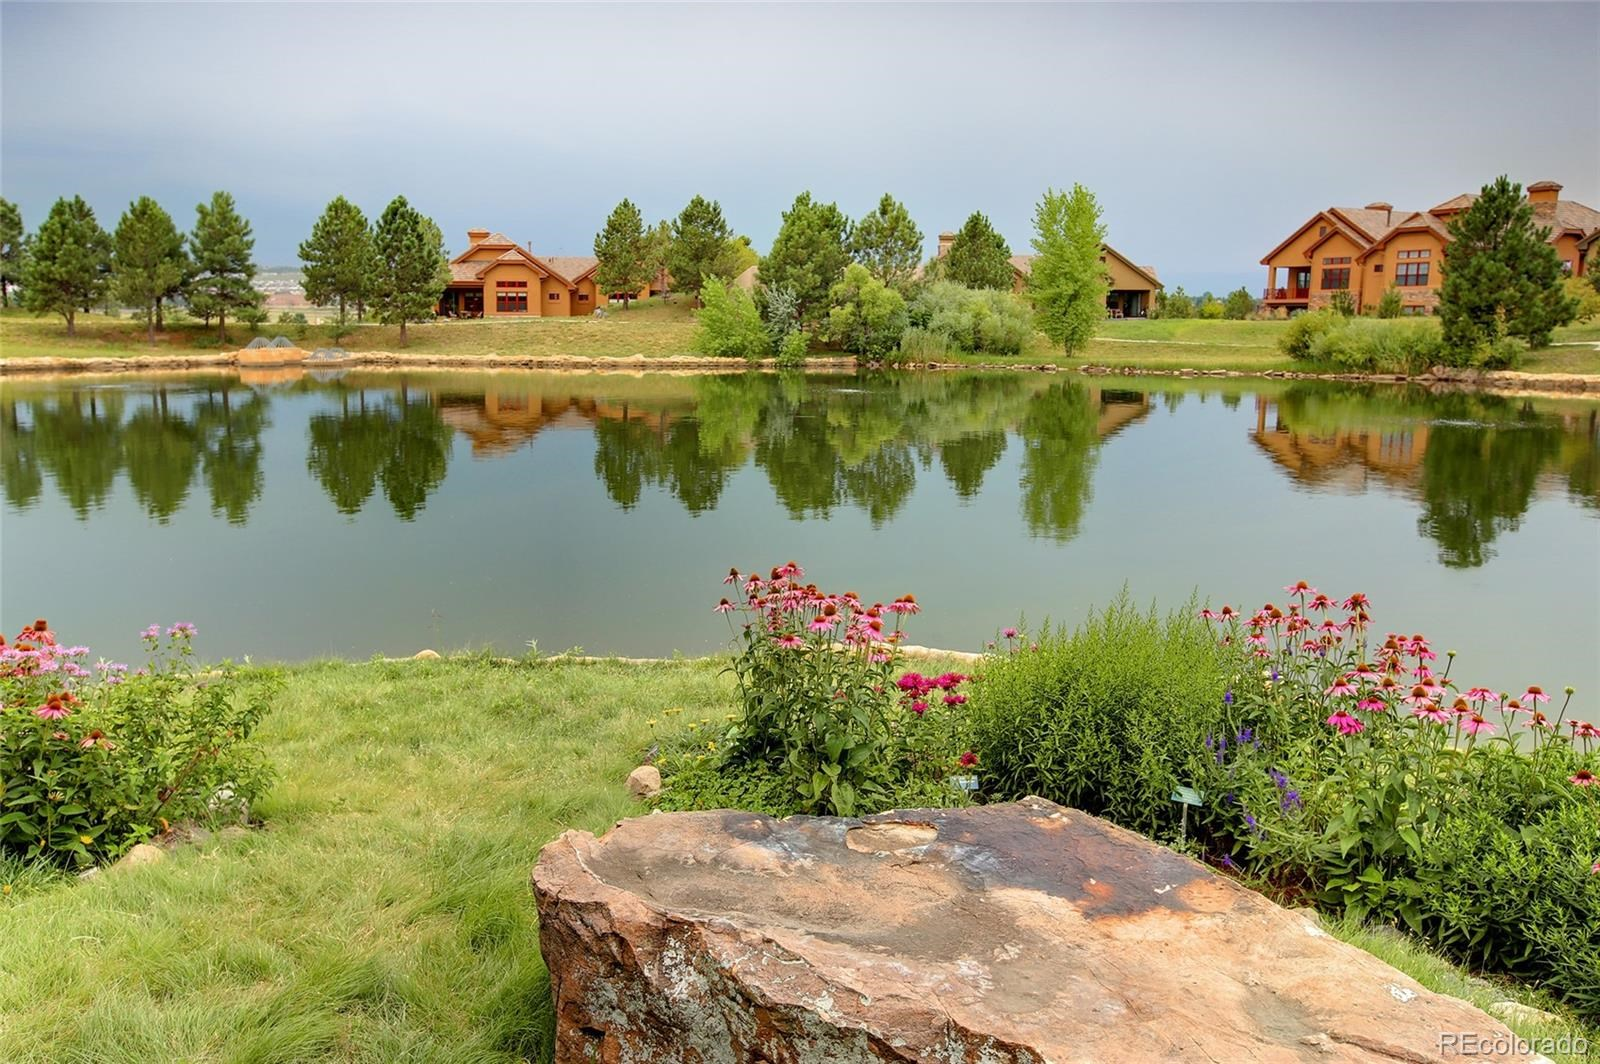 MLS# 2980484 - 8 - 992 Country Club Parkway, Castle Rock, CO 80108